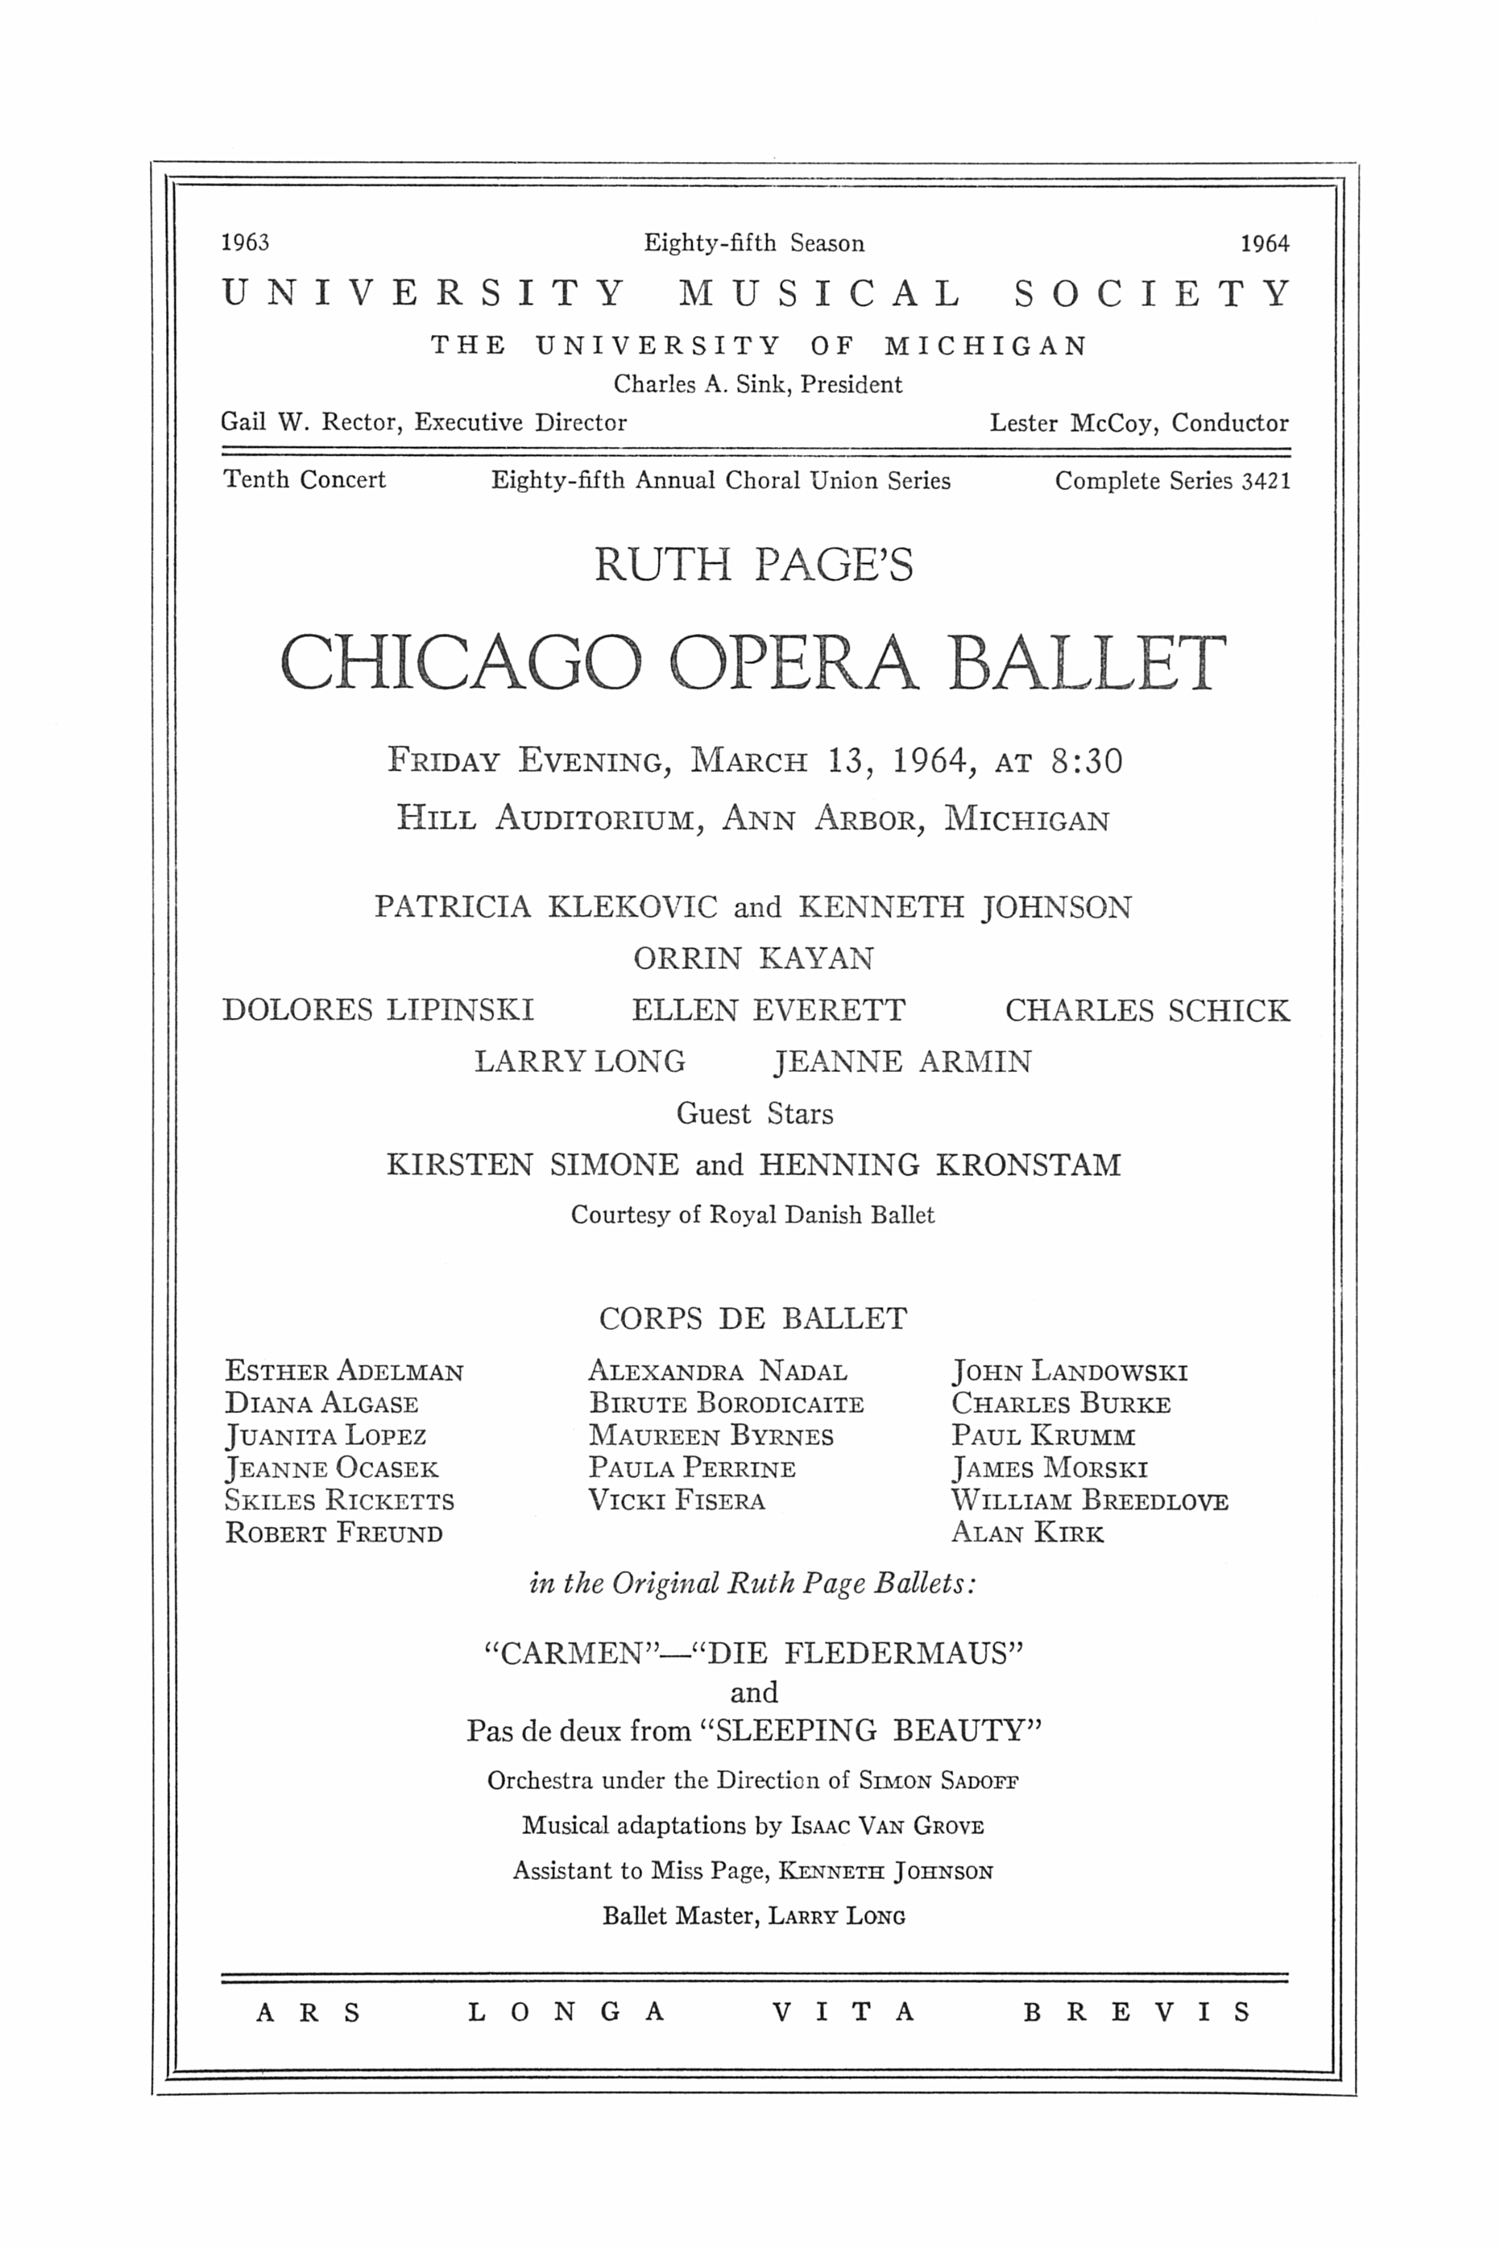 UMS Concert Program, March 13, 1964: Chicago Opera Ballet -- Patricia Klekovic image